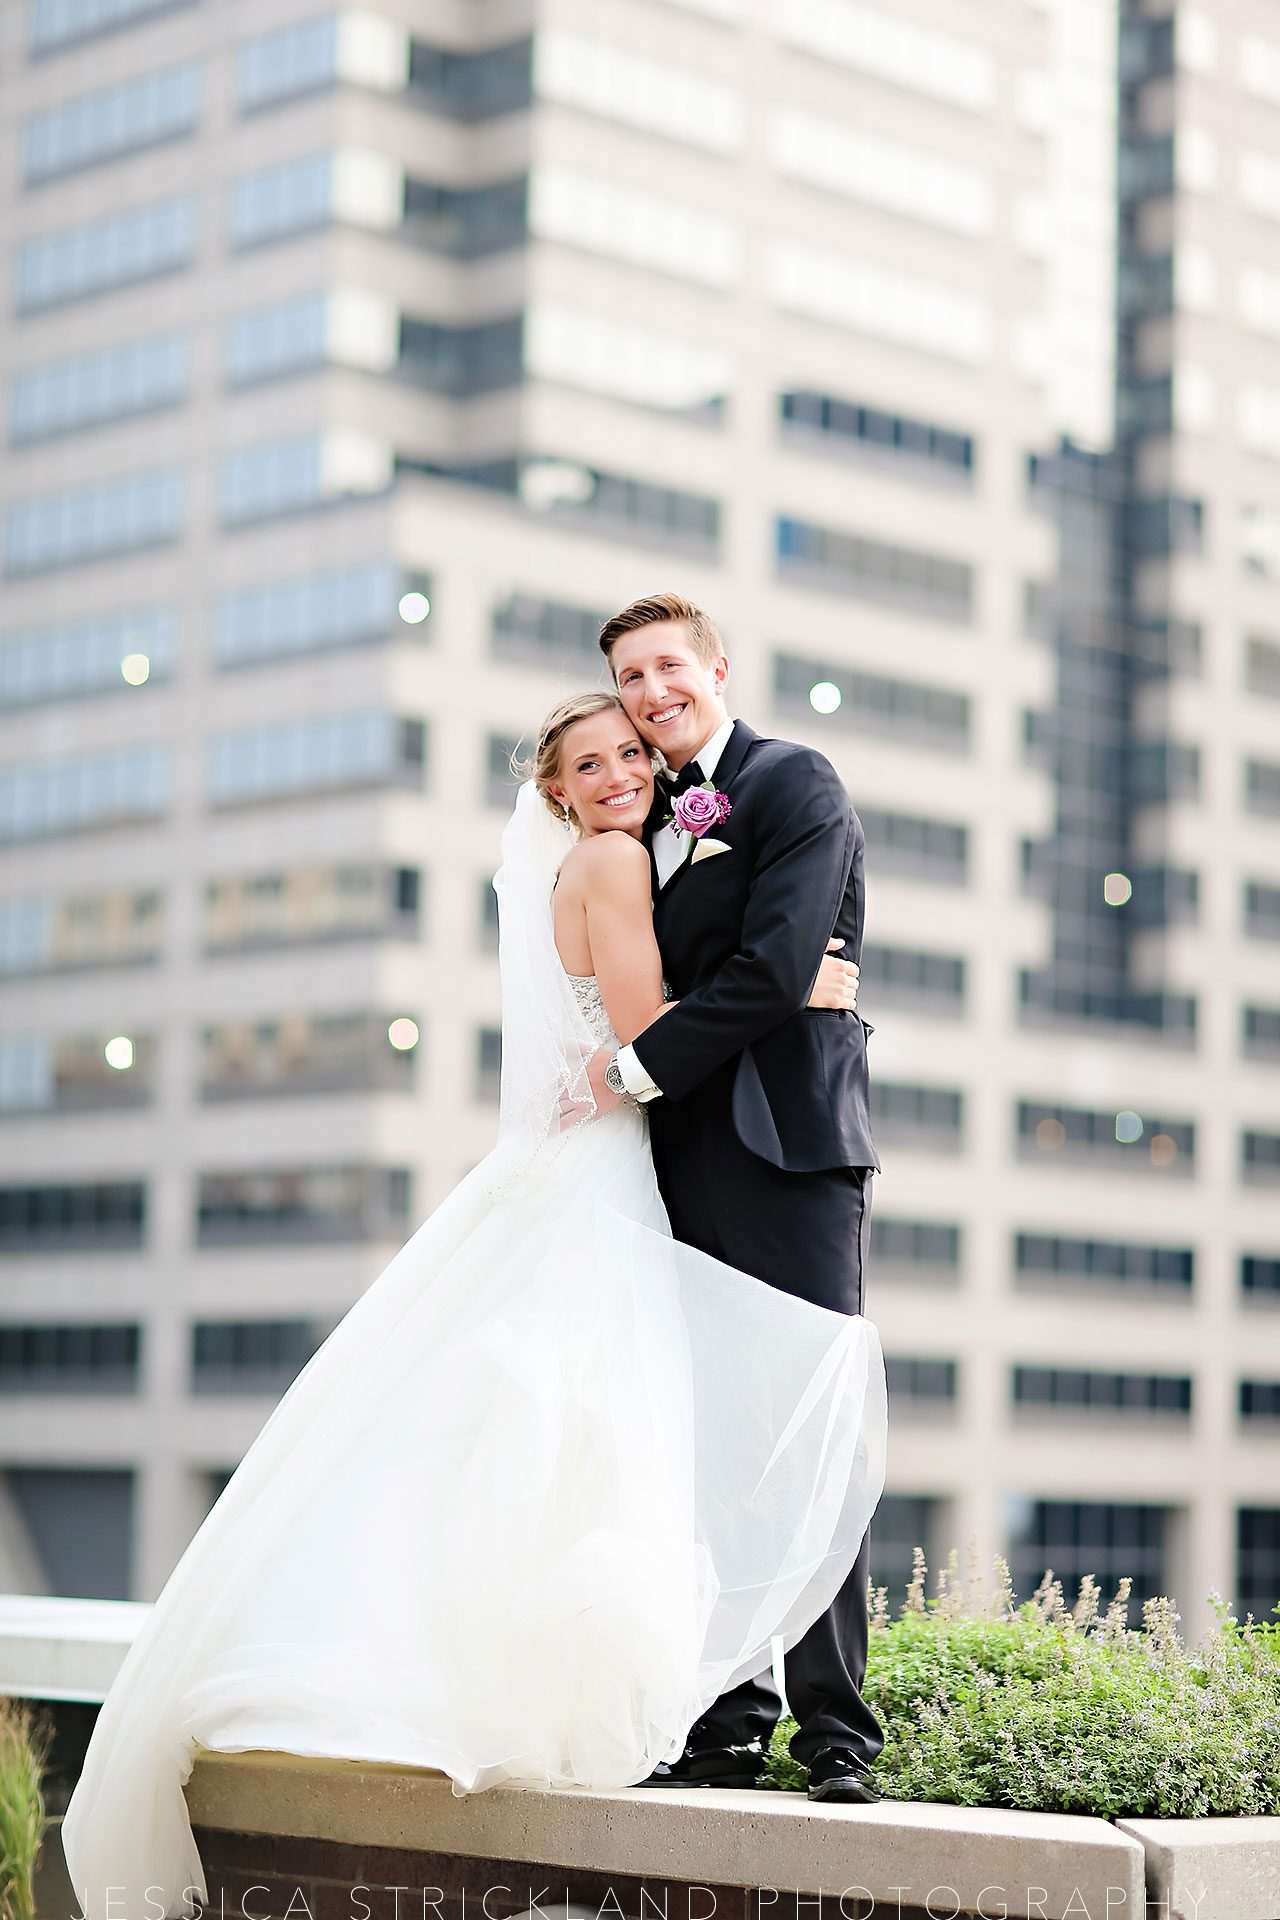 Serra Alex Regions Tower Indianapolis Wedding 267 watermarked